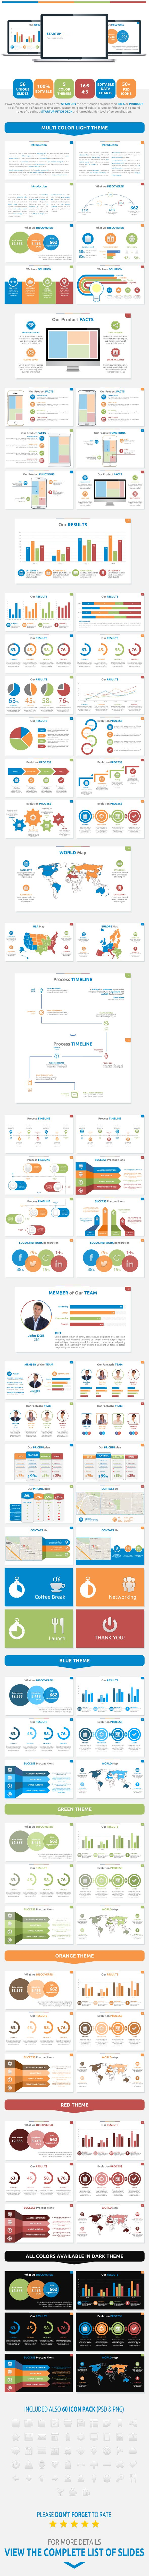 STARTUP Pitch Deck PowerPoint Presentation Template #powerpoint #powerpointtemplate Download: http://graphicriver.net/item/startup-pitch-deck-powerpoint-presentation/10027931?ref=ksioks